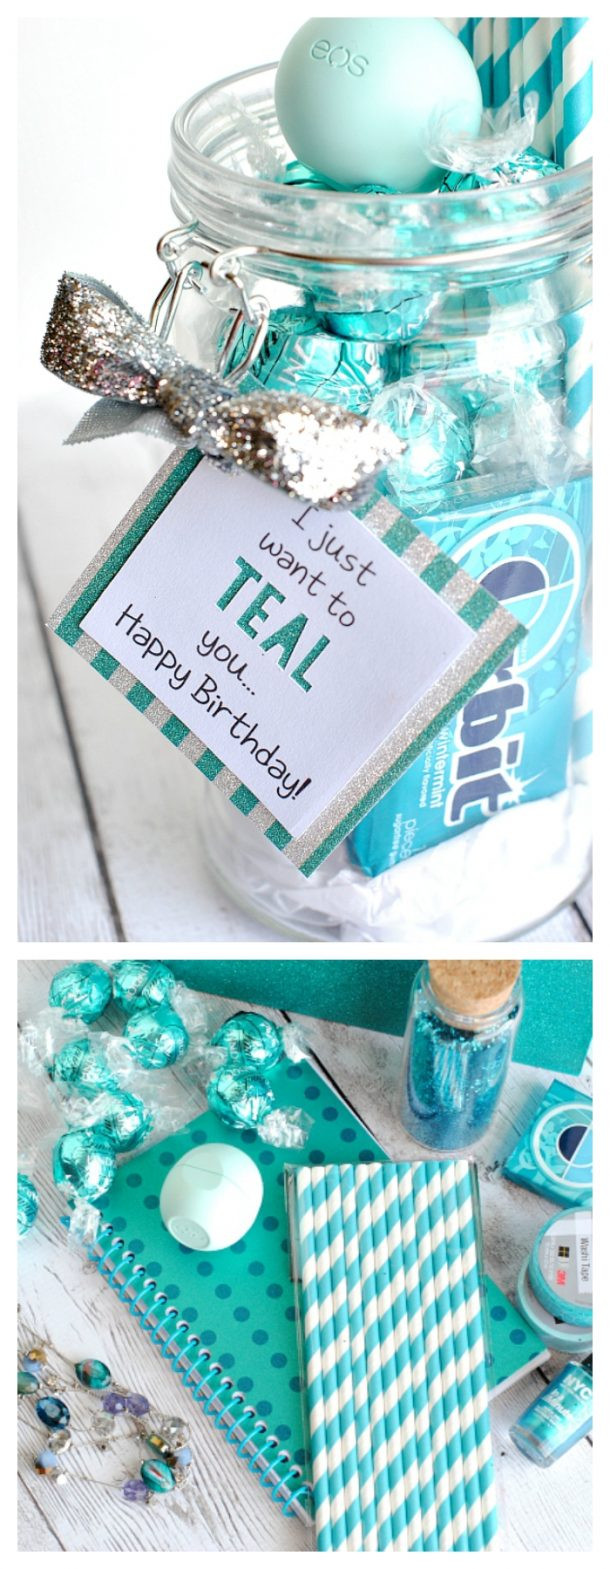 Thank You Gift Basket Ideas  Do it Yourself Gift Basket Ideas for All Occasions